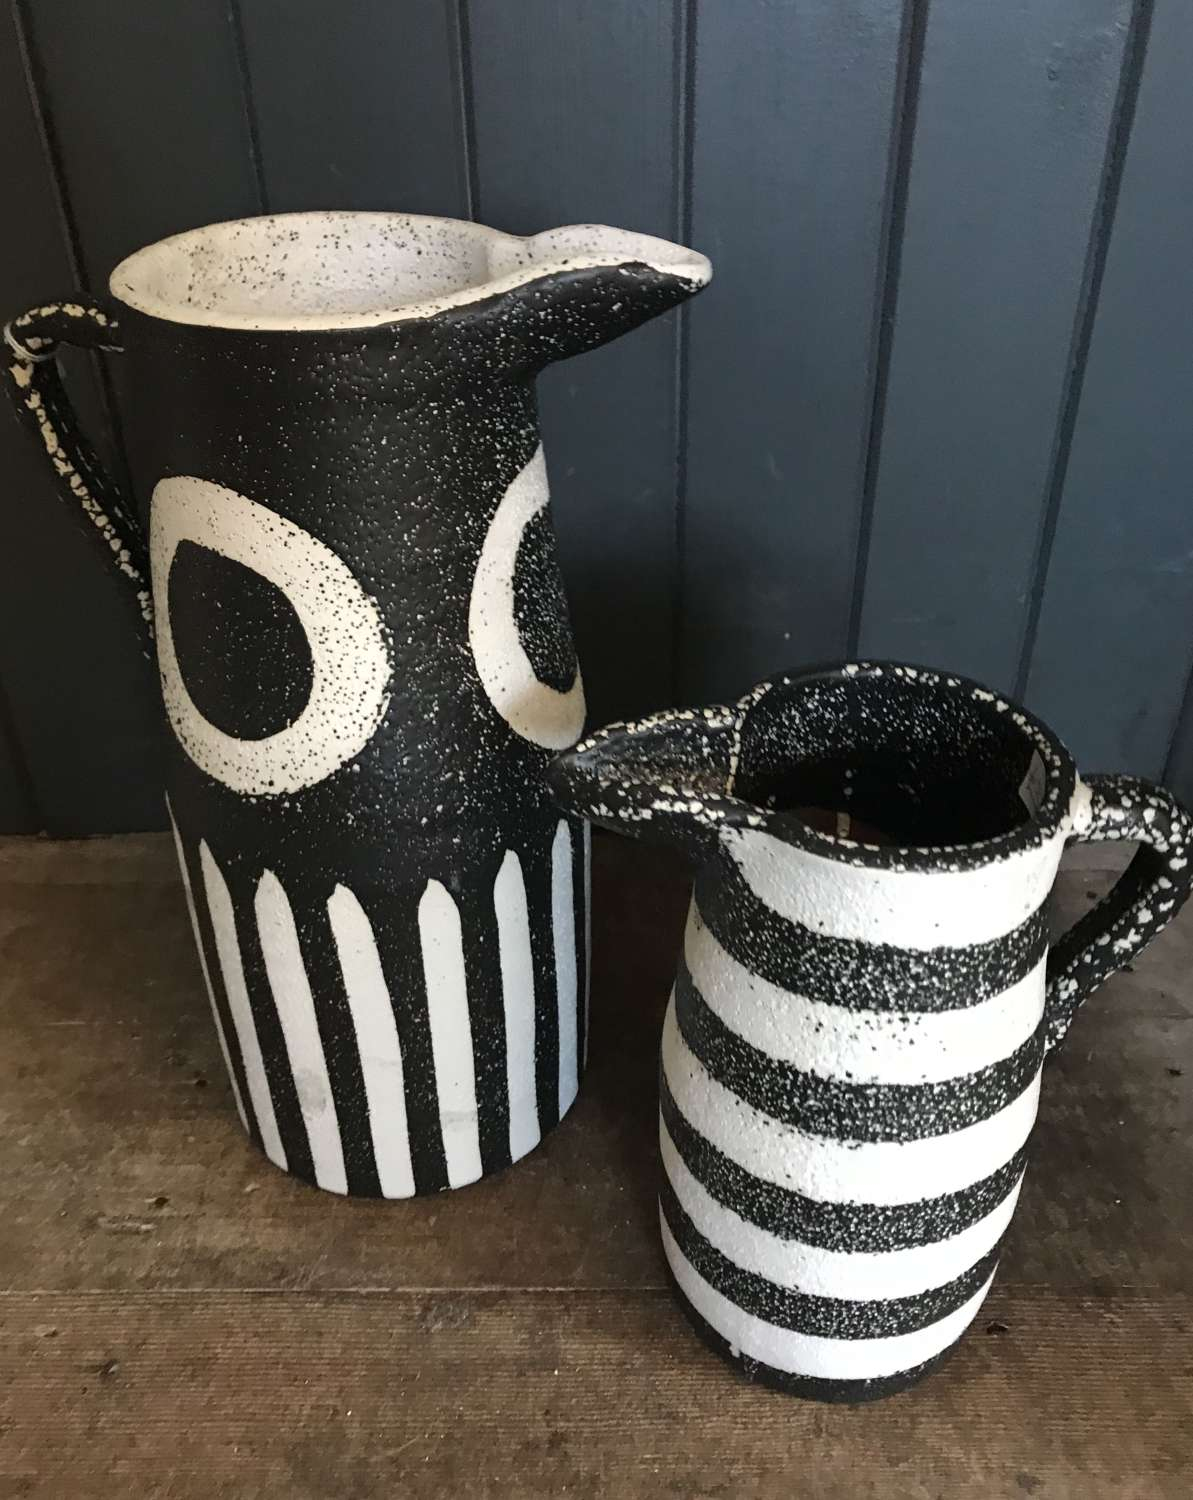 Black & White Pitchers